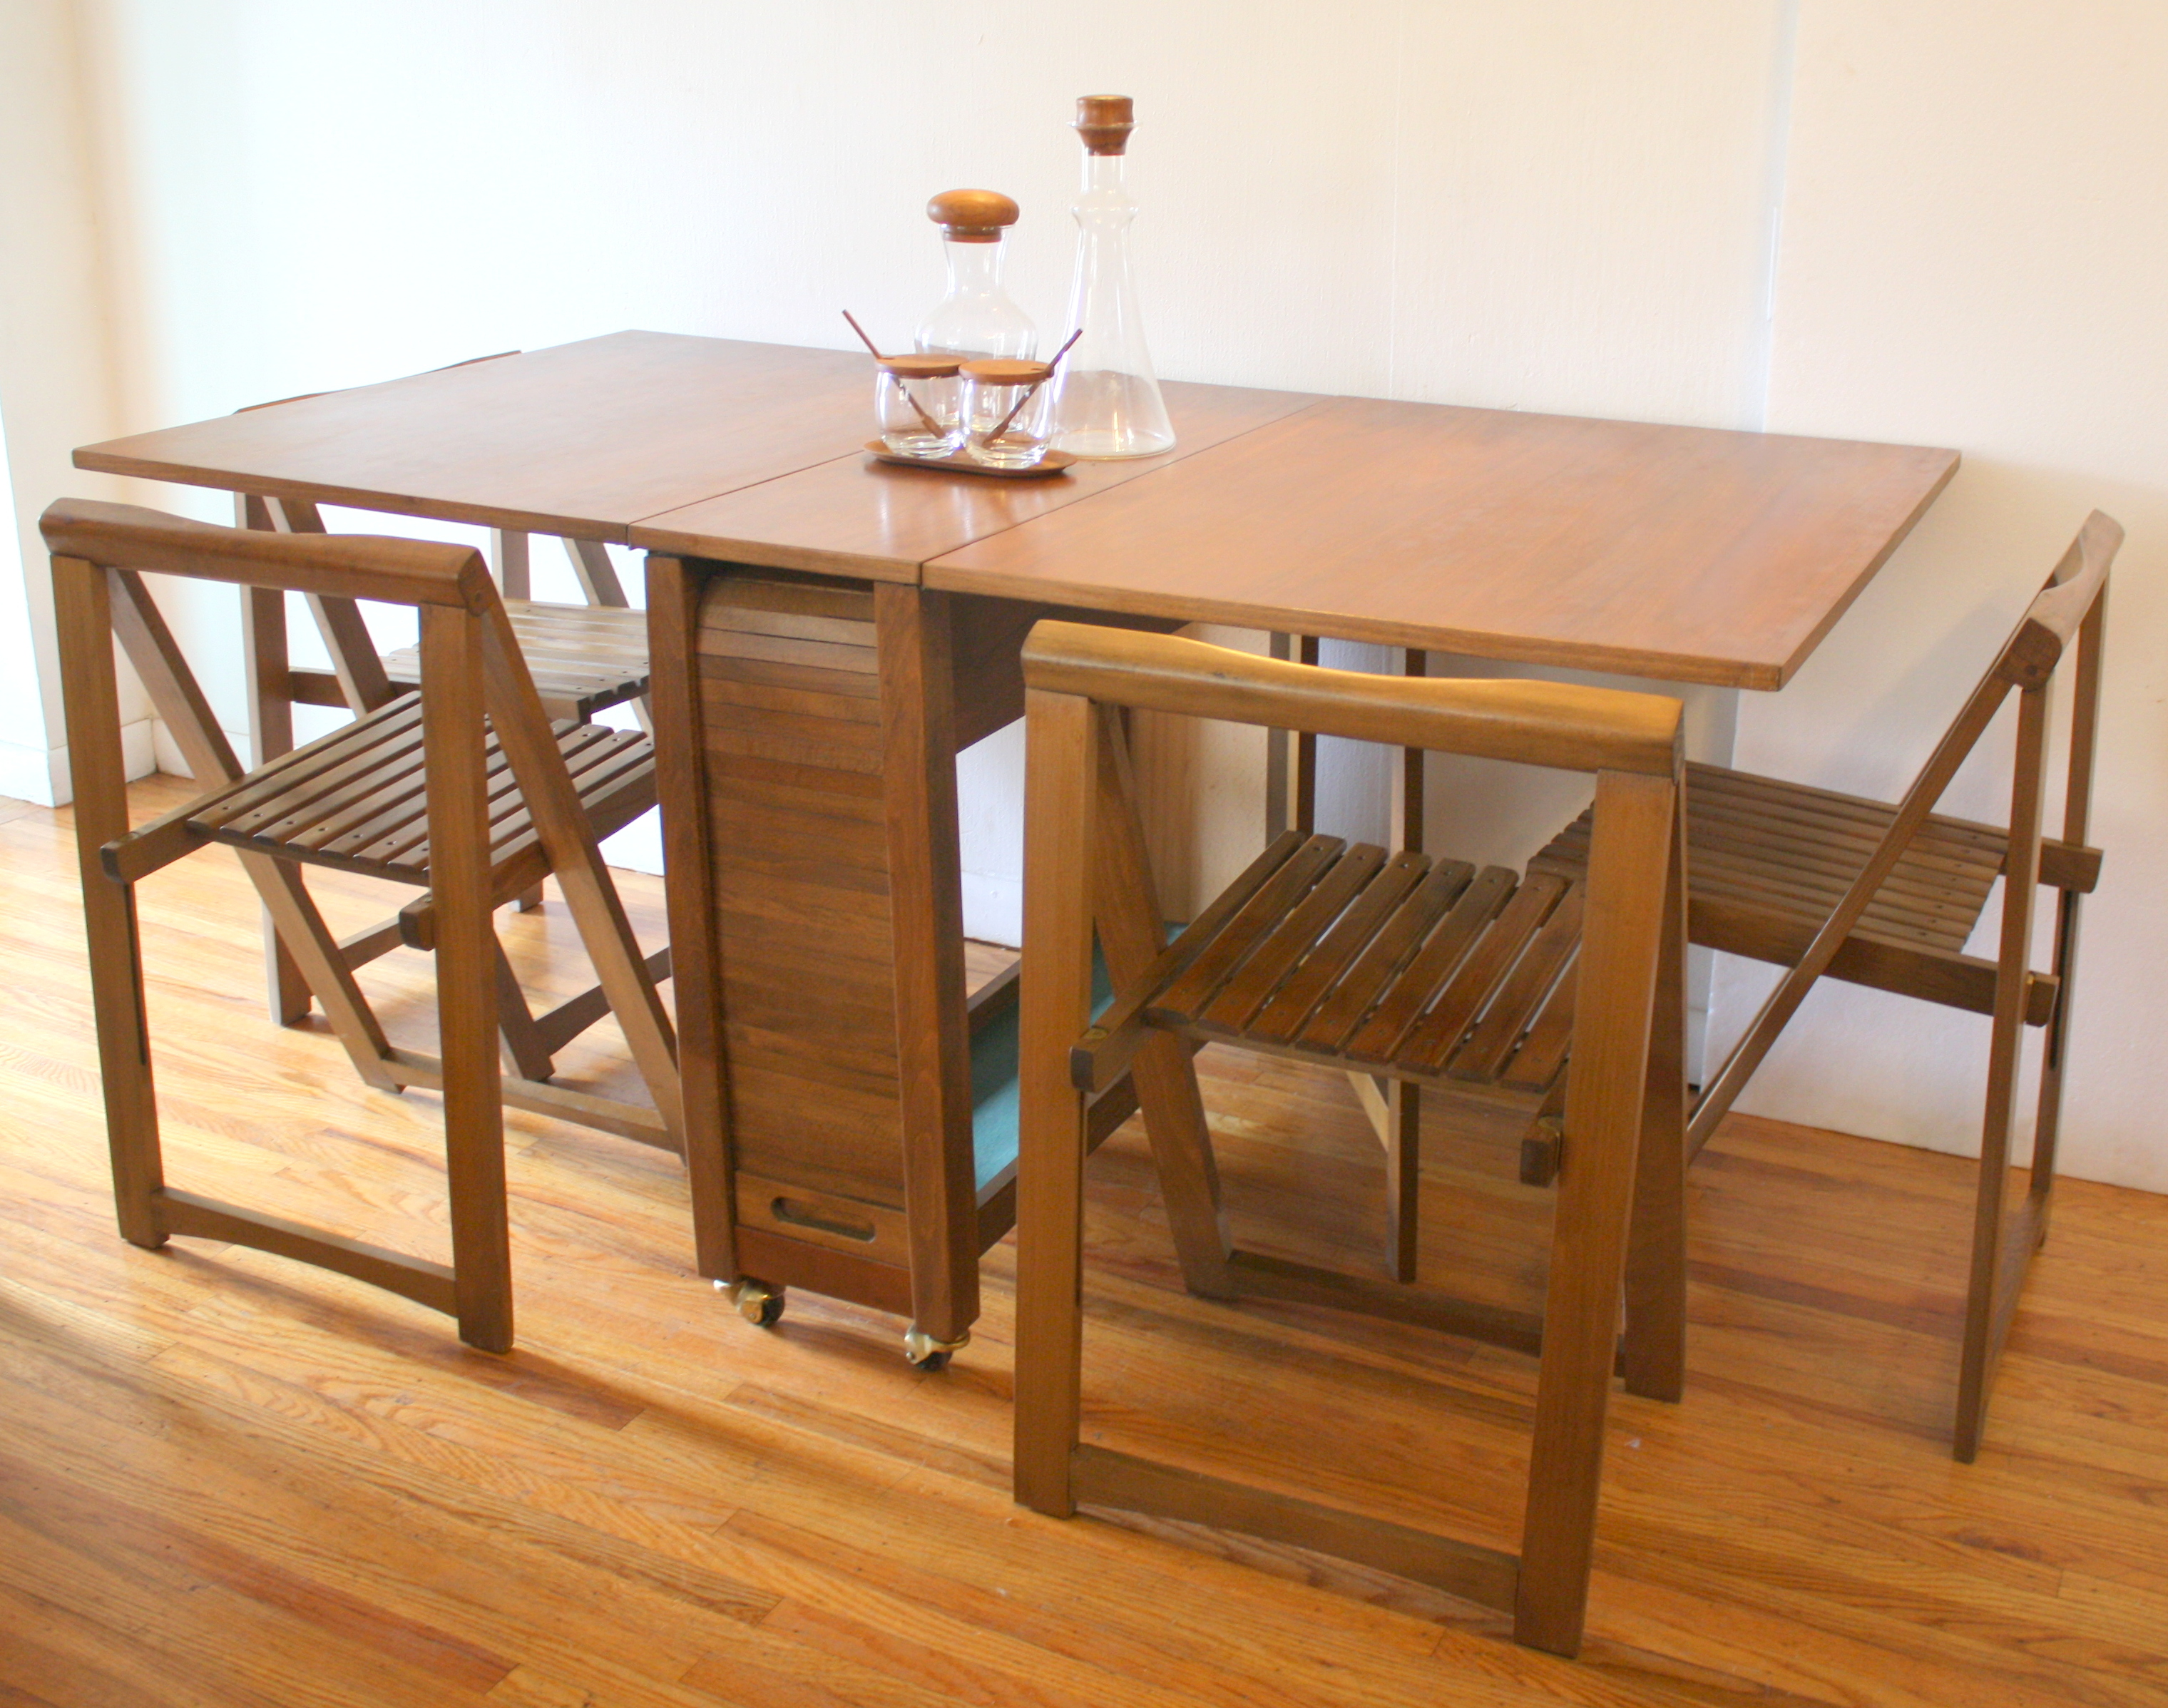 Gateleg table gateleg table kijiji free classifieds in ontario find a job with cheap old gate - Gateleg table with chairs ...